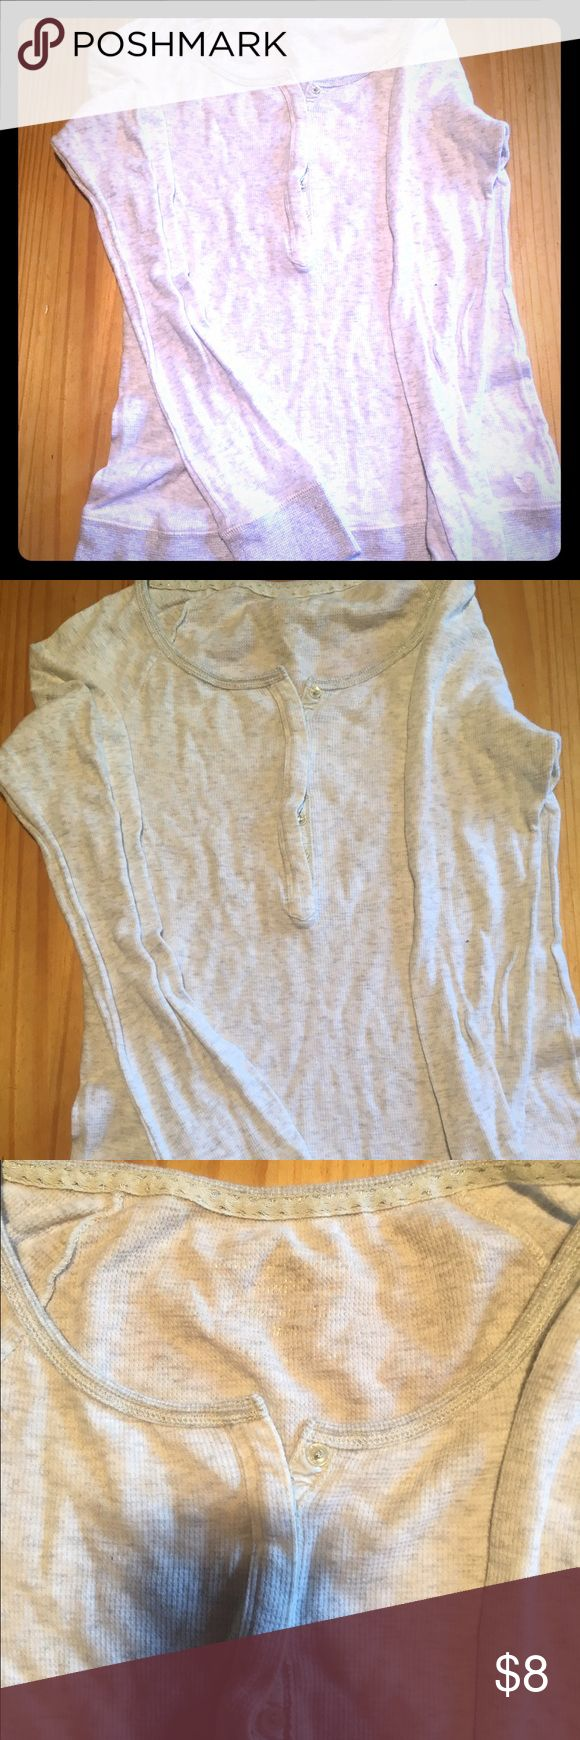 AE Outfitters long sleeve Size medium. Gently used. American Eagle Outfitters Tops Tees - Long Sleeve